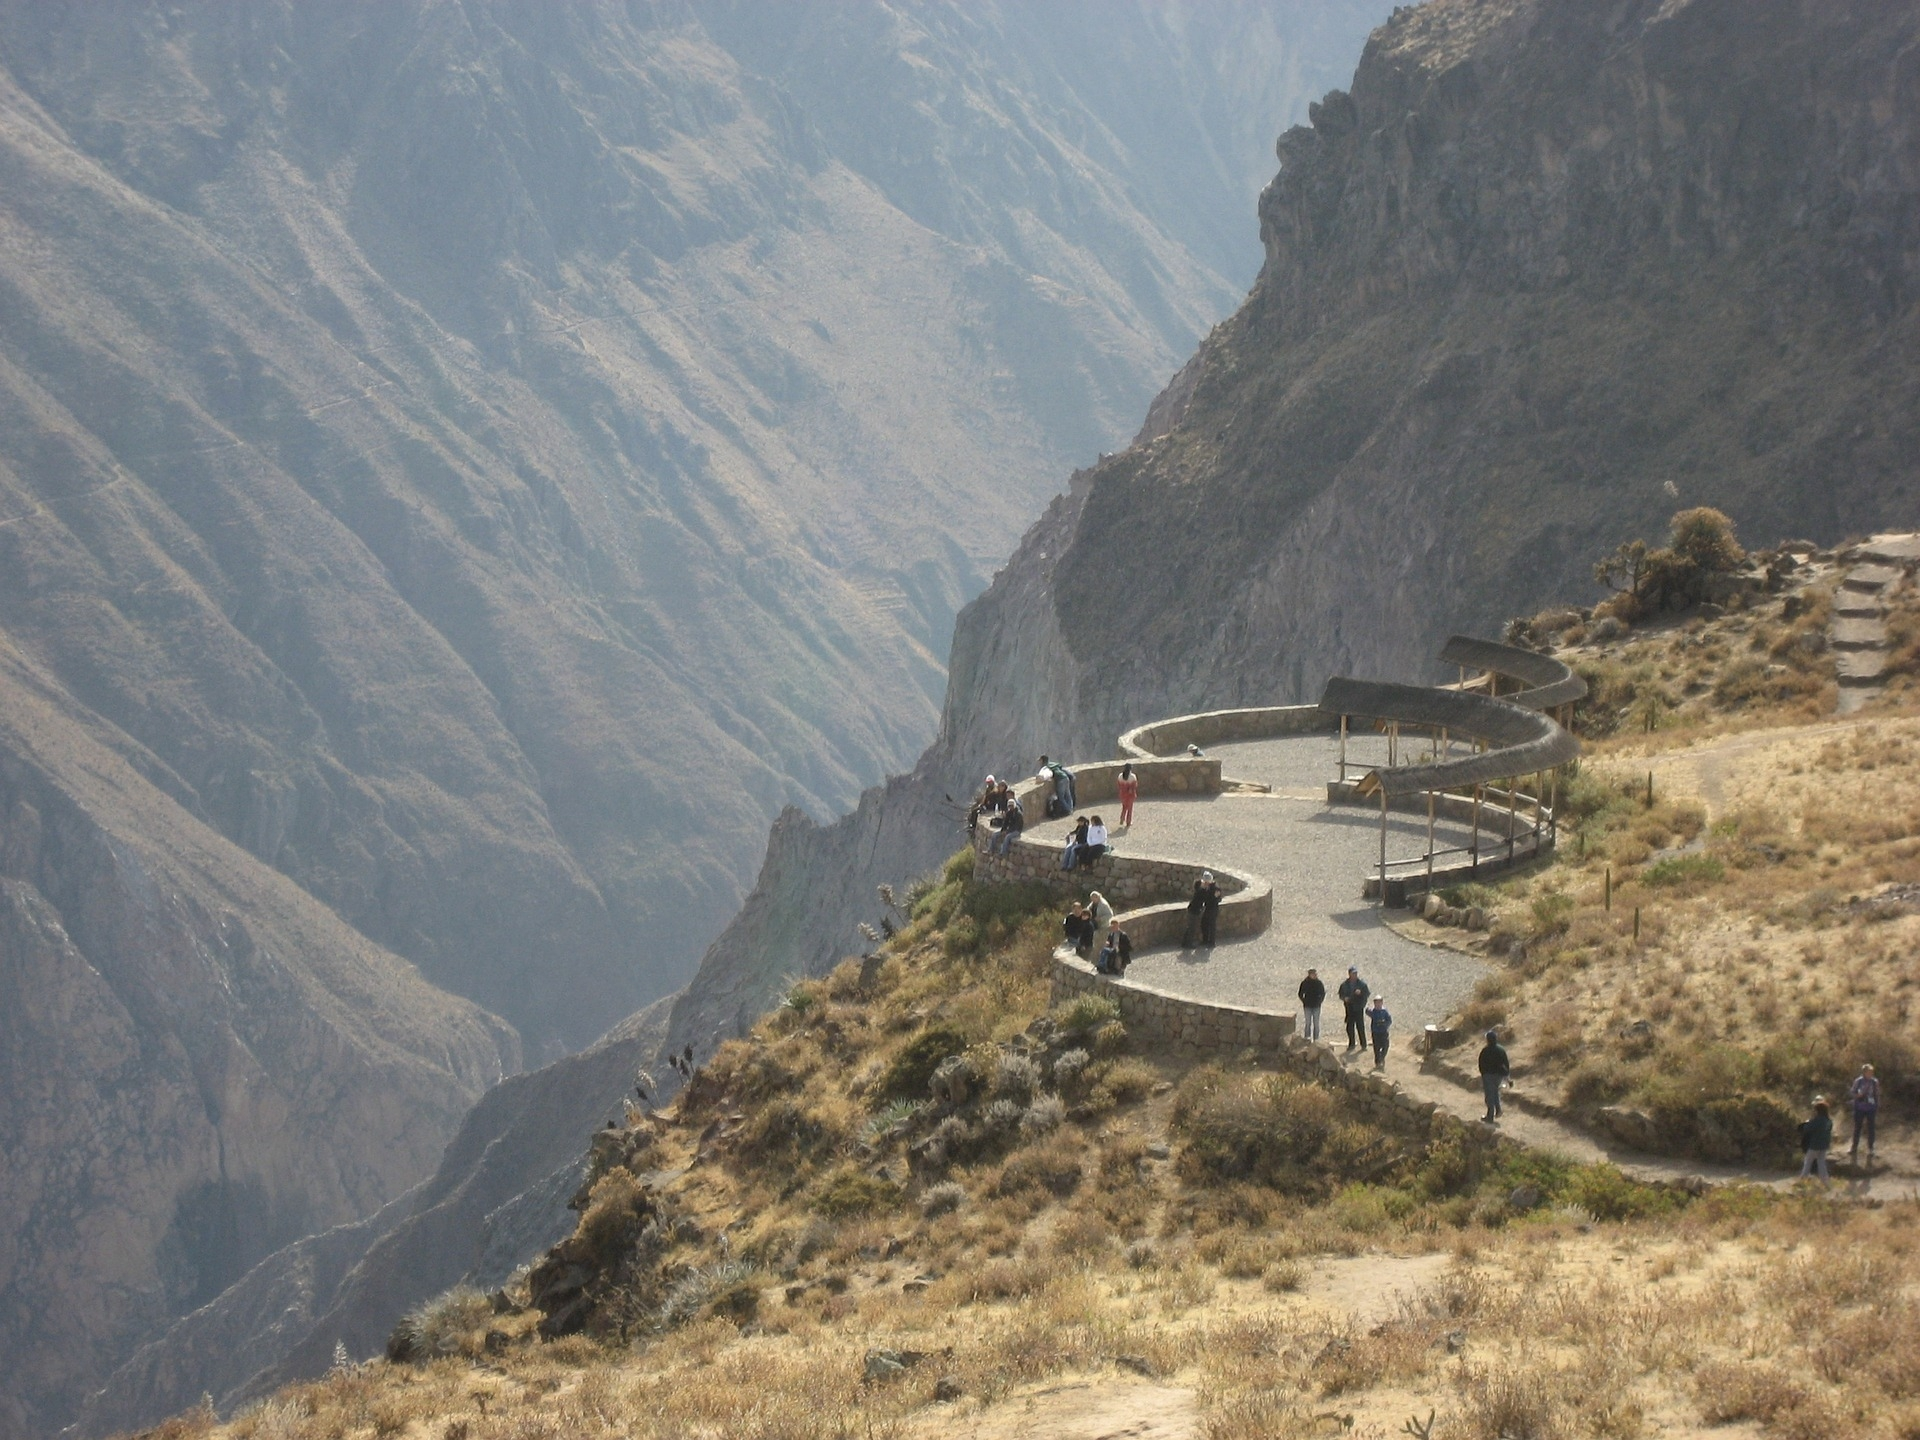 Ultimate South America with Arequipa & Colca Canyon by Cosmos with 4